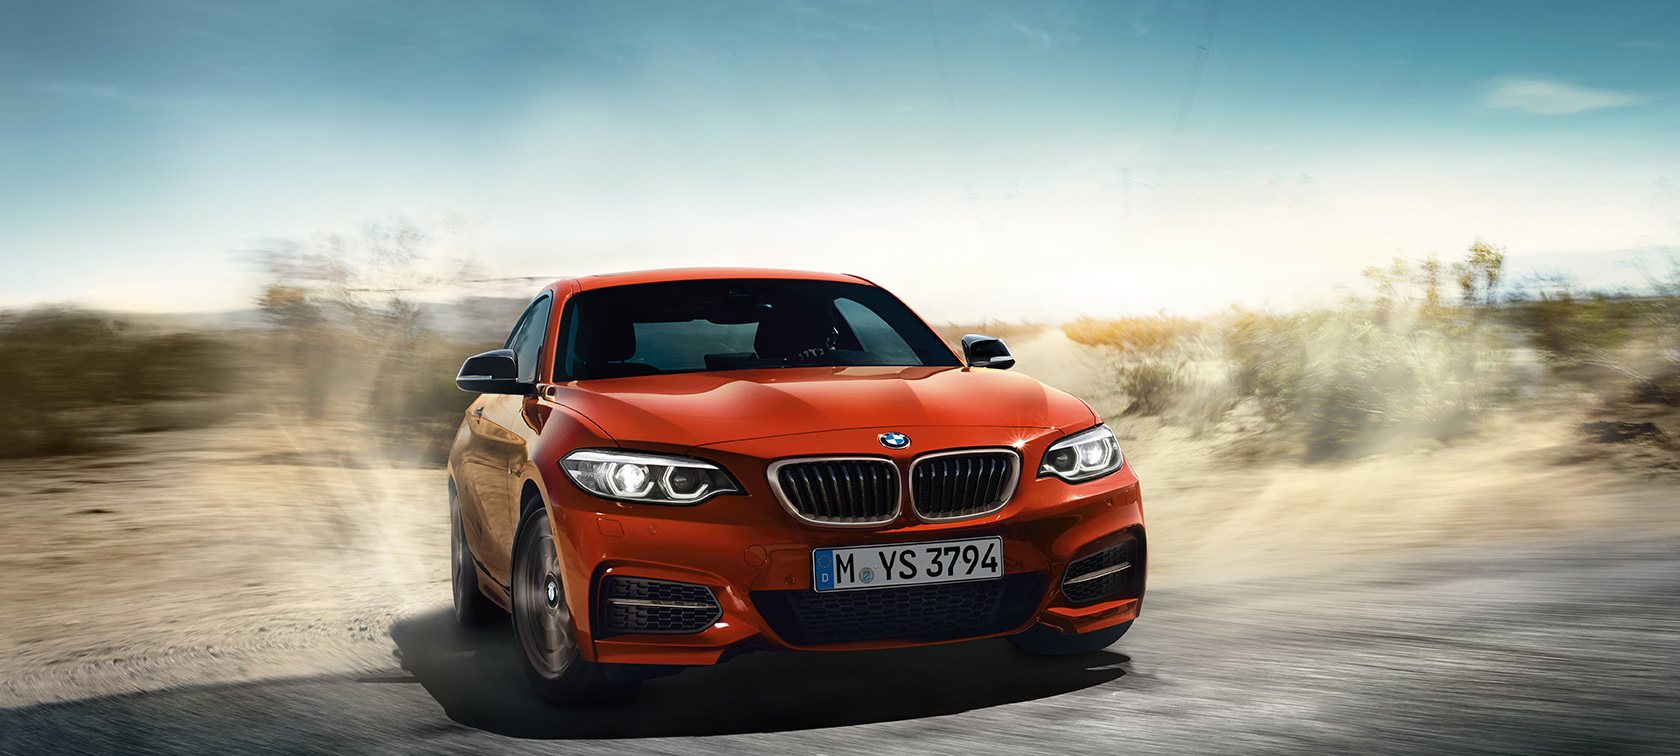 BMW Serie 2 Coupé, ripresa dinamica in movimento